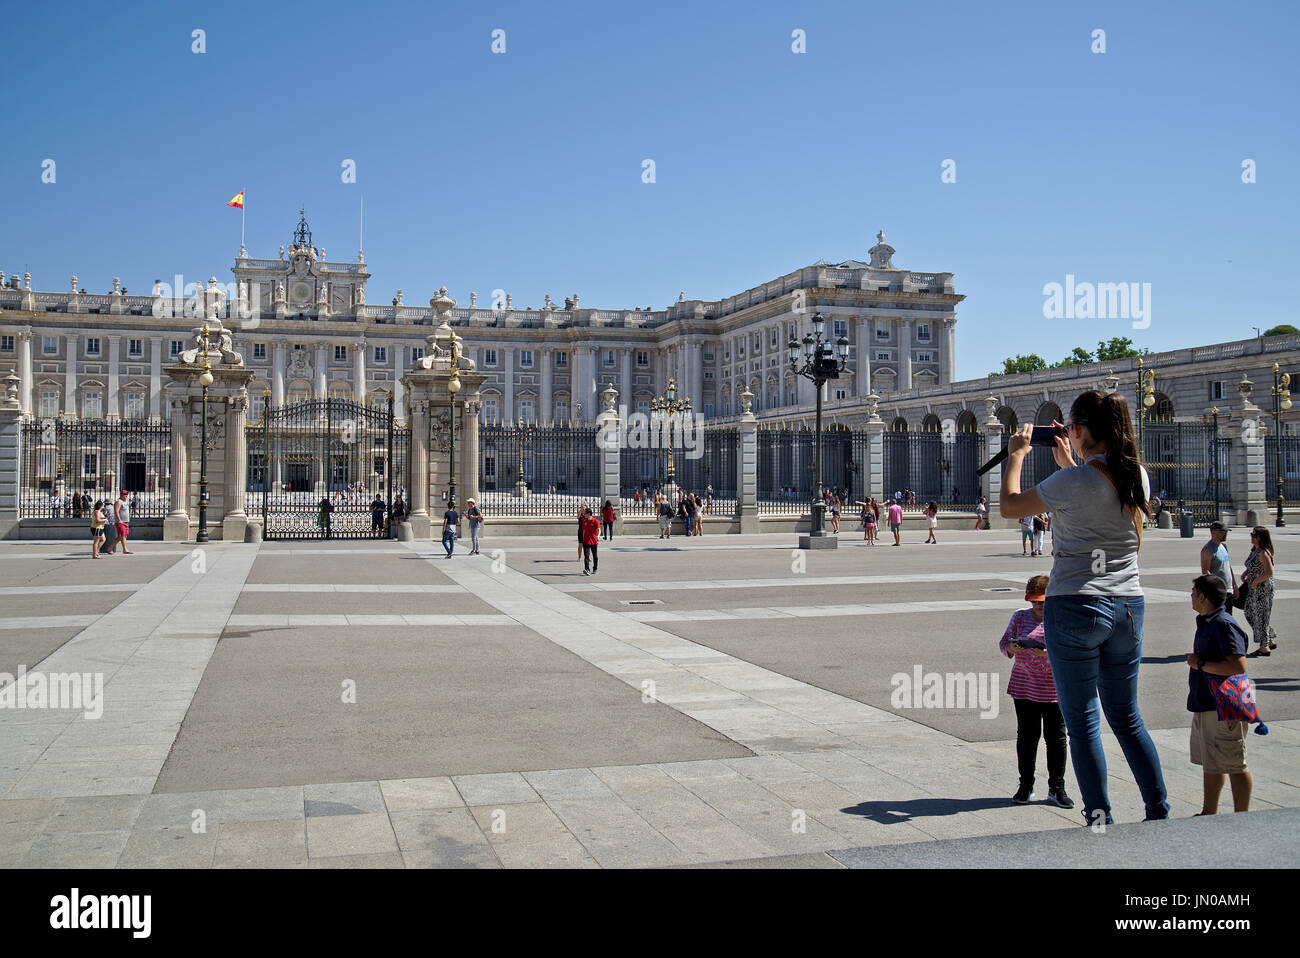 Group of tourists take photographs of Palacio Real (Royal Palace) in Madrid, Spain, in a very sunny day with unclouded blue sky. - Stock Image